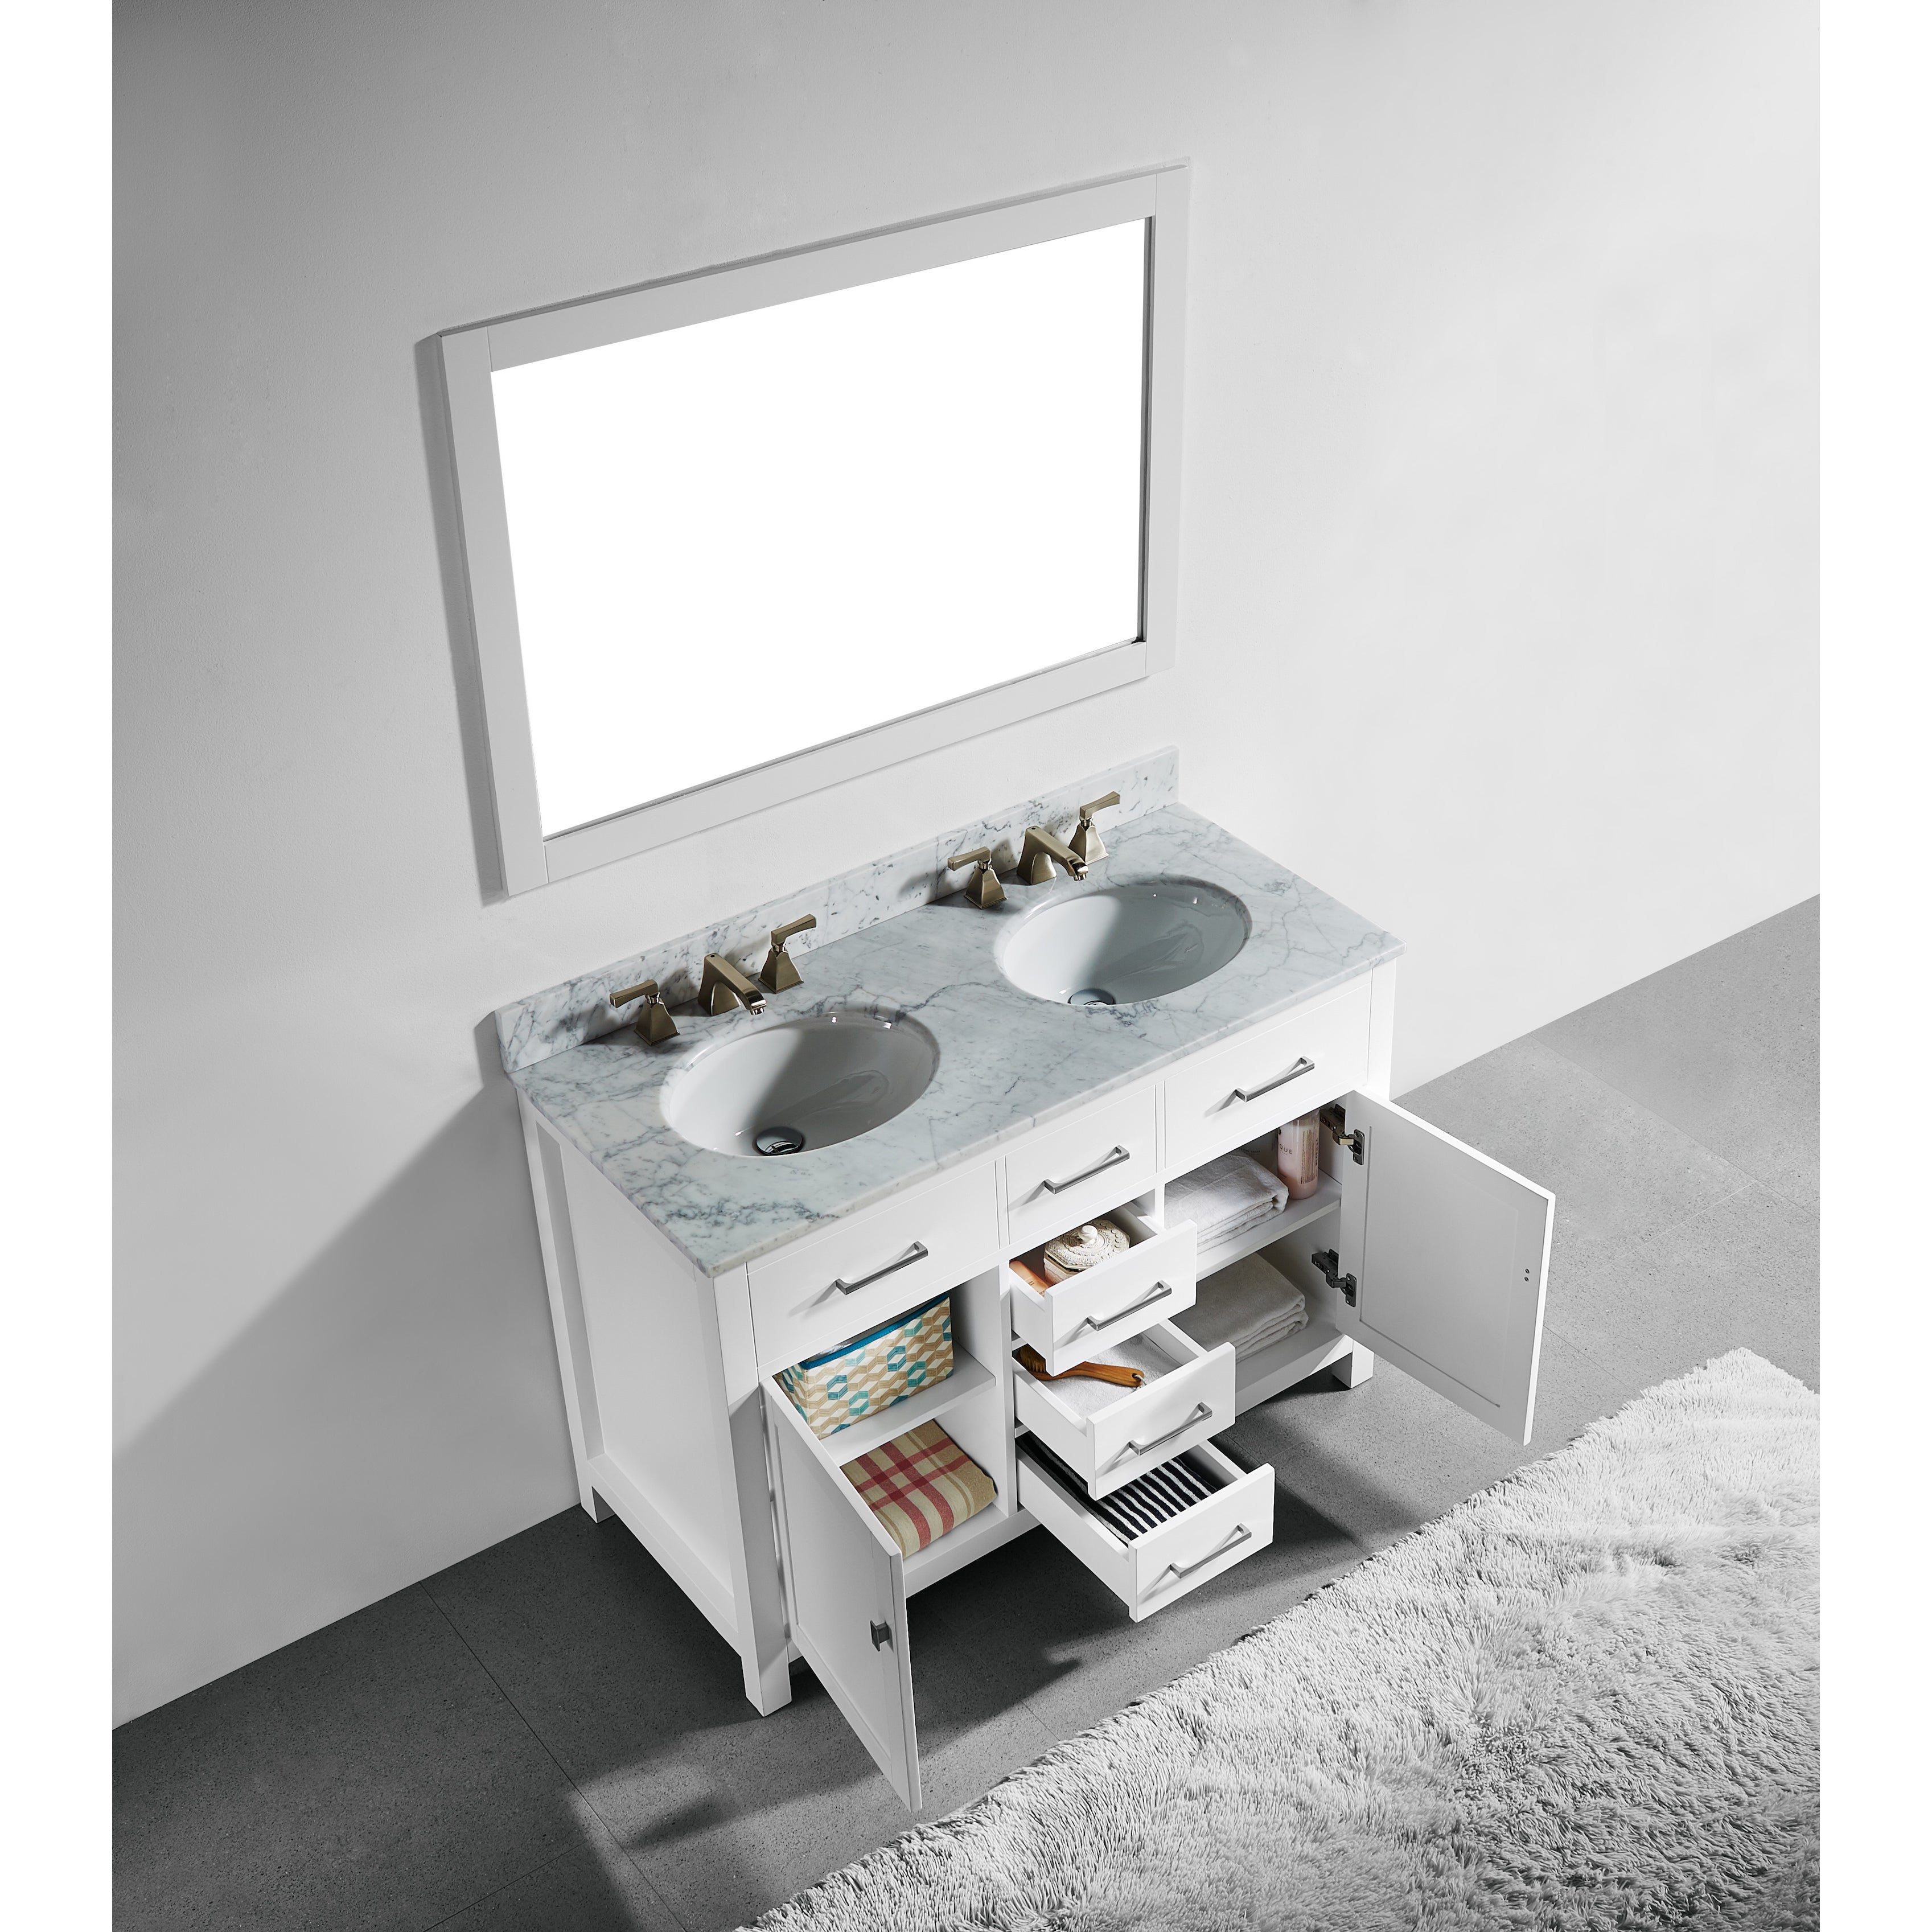 48 Inch White Finish Solid Wood Double Sink Bathroom Vanity With Soft Closing Drawers And Mirror Overstock 12382377